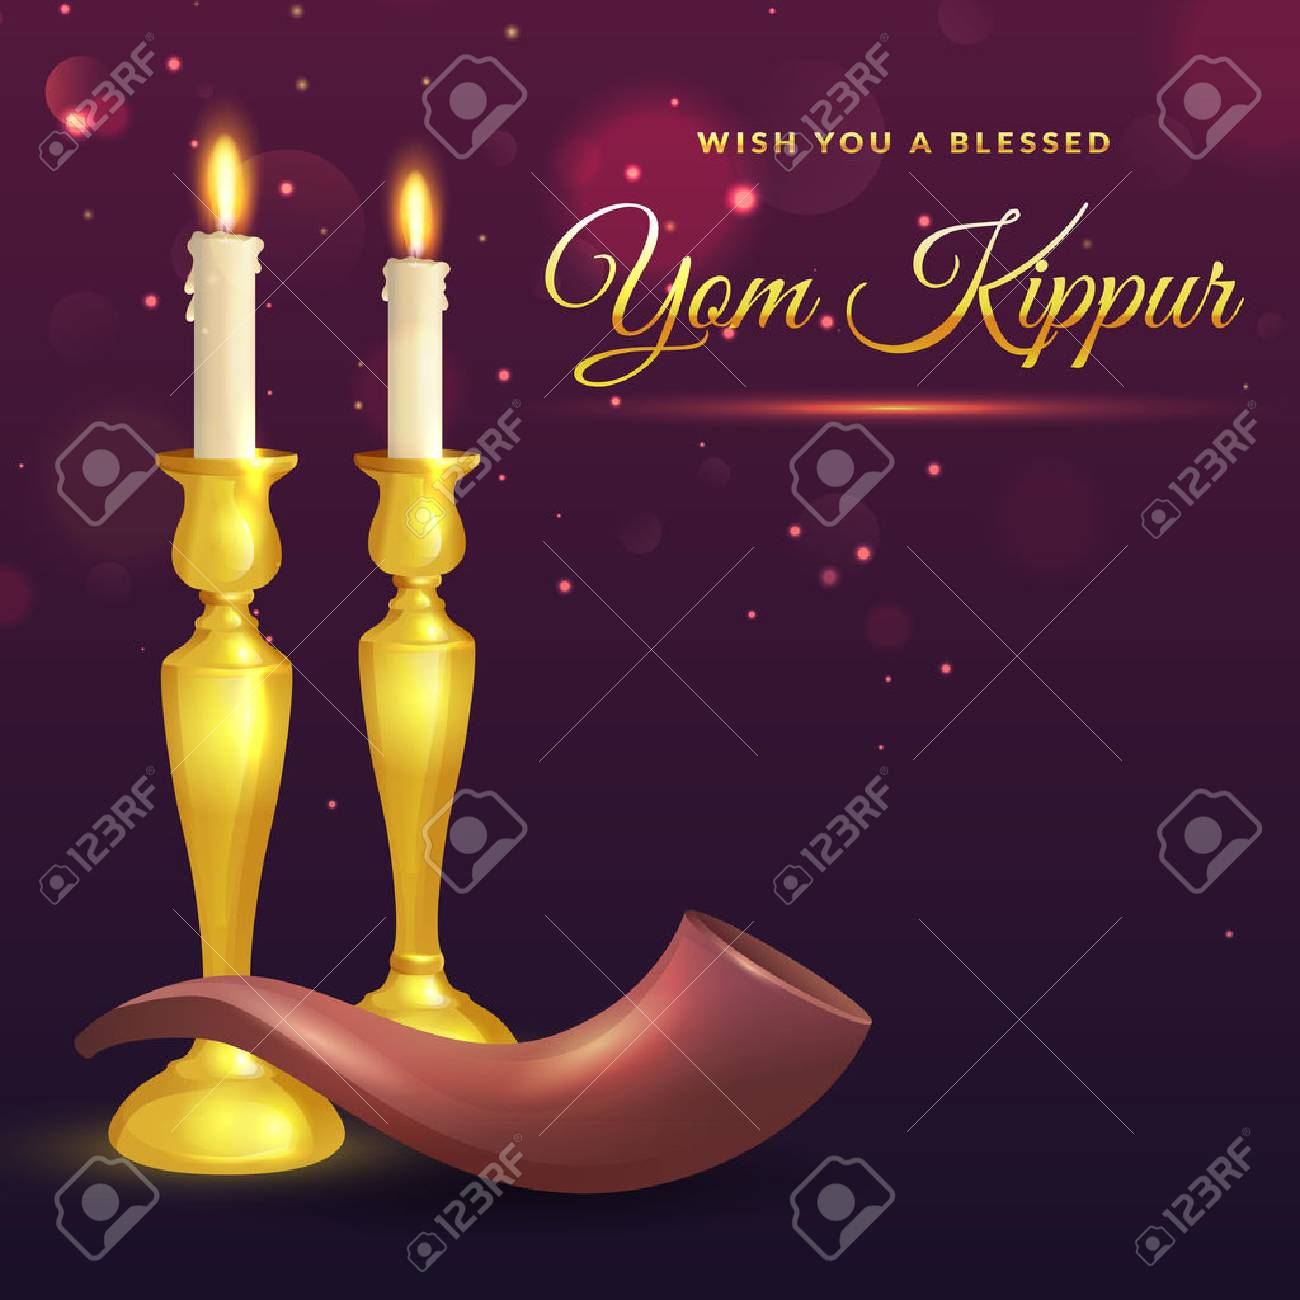 Yom Kippur Greeting Card With Candles And Shofar Jewish Holiday